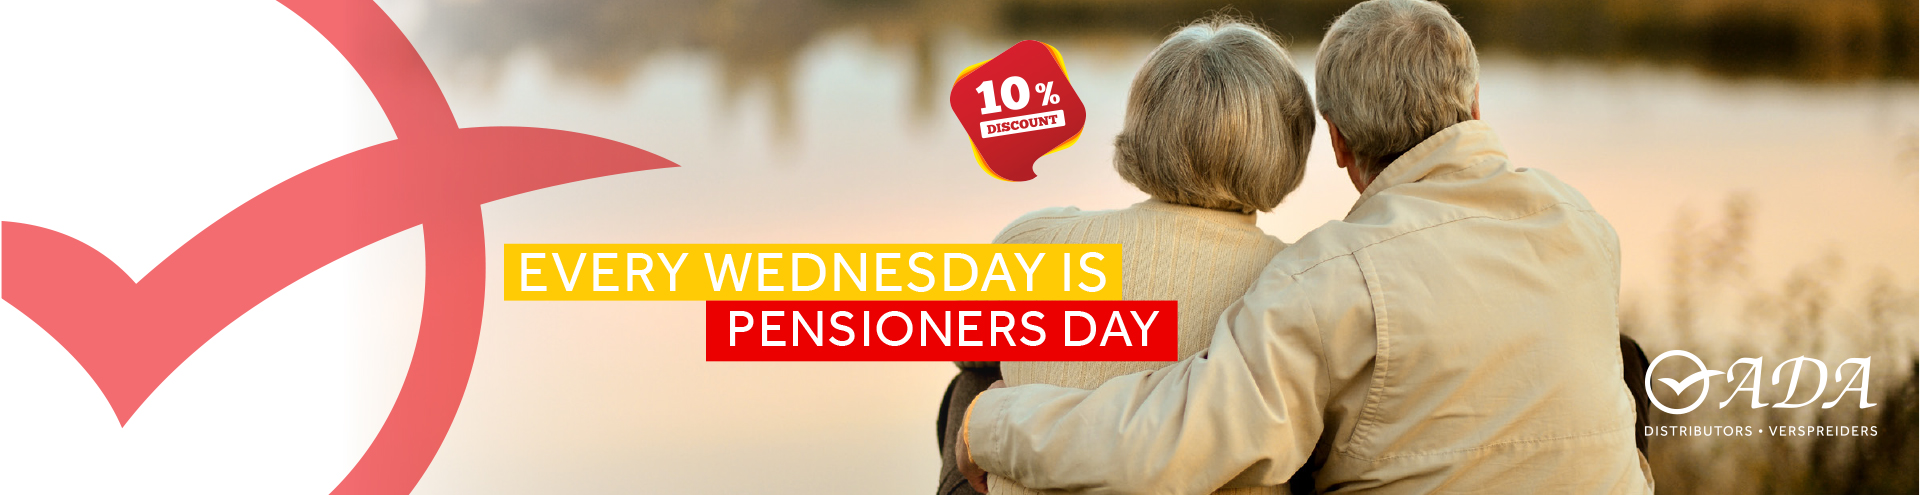 Every Wednesday is Pensioners Day (10% Discount)